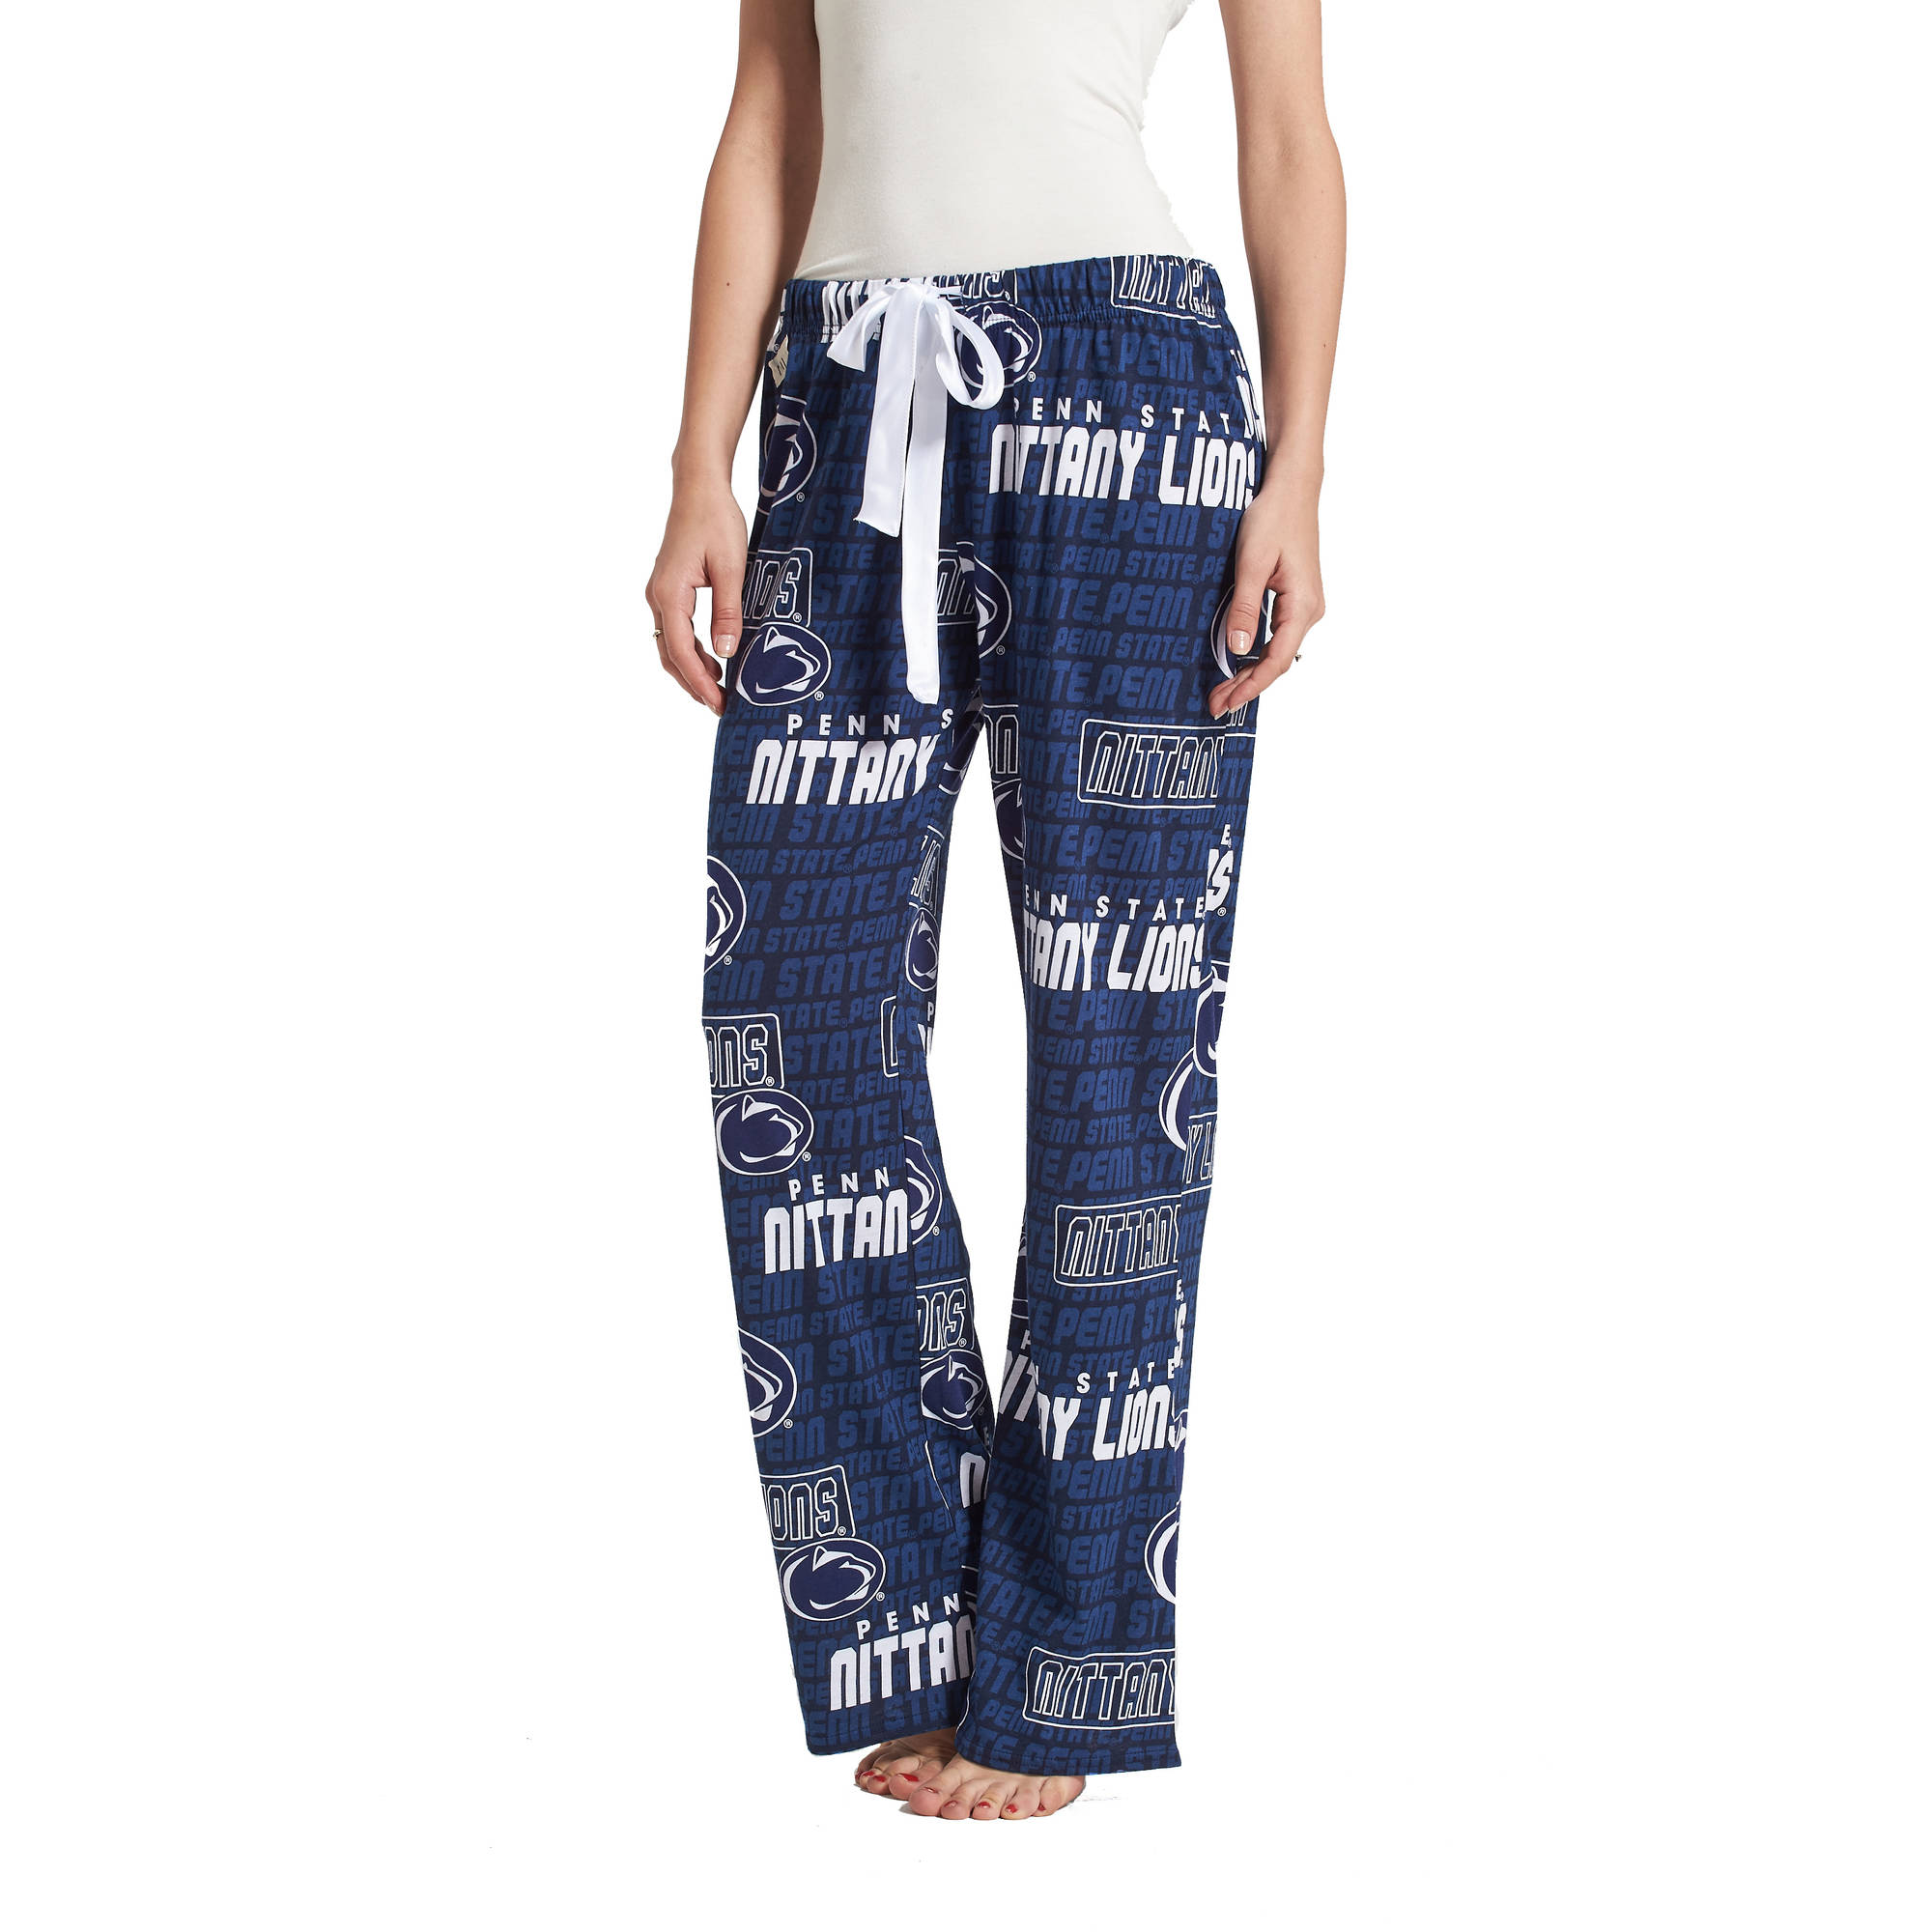 NCAA Penn State Nittany Lions Transform Ladies' AOP Knit Pant